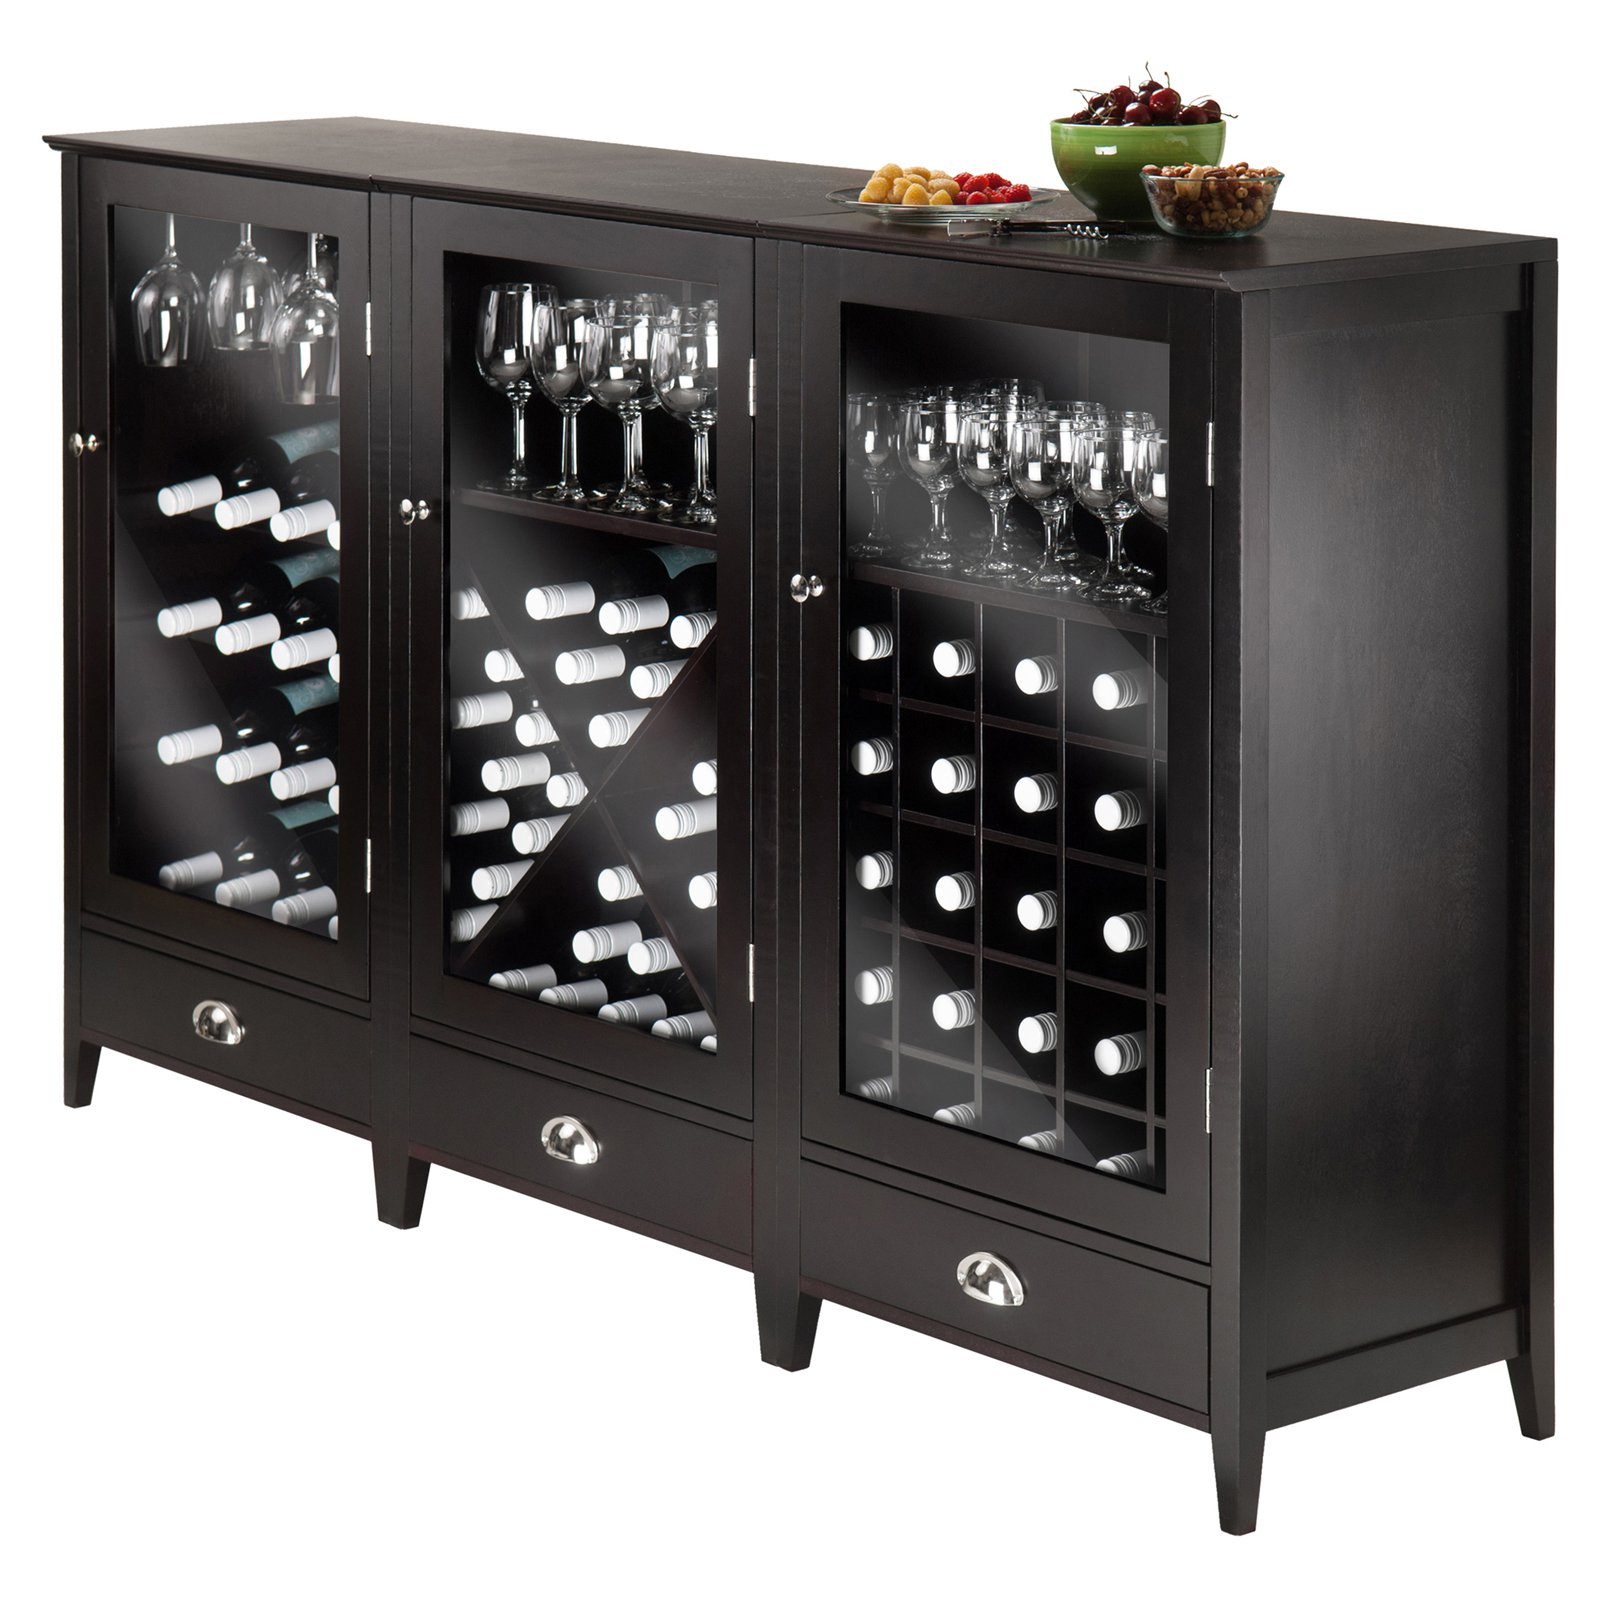 Winsome Wood Bordeaux 3pc Modular Wine Cabinet Set, Espresso Finish